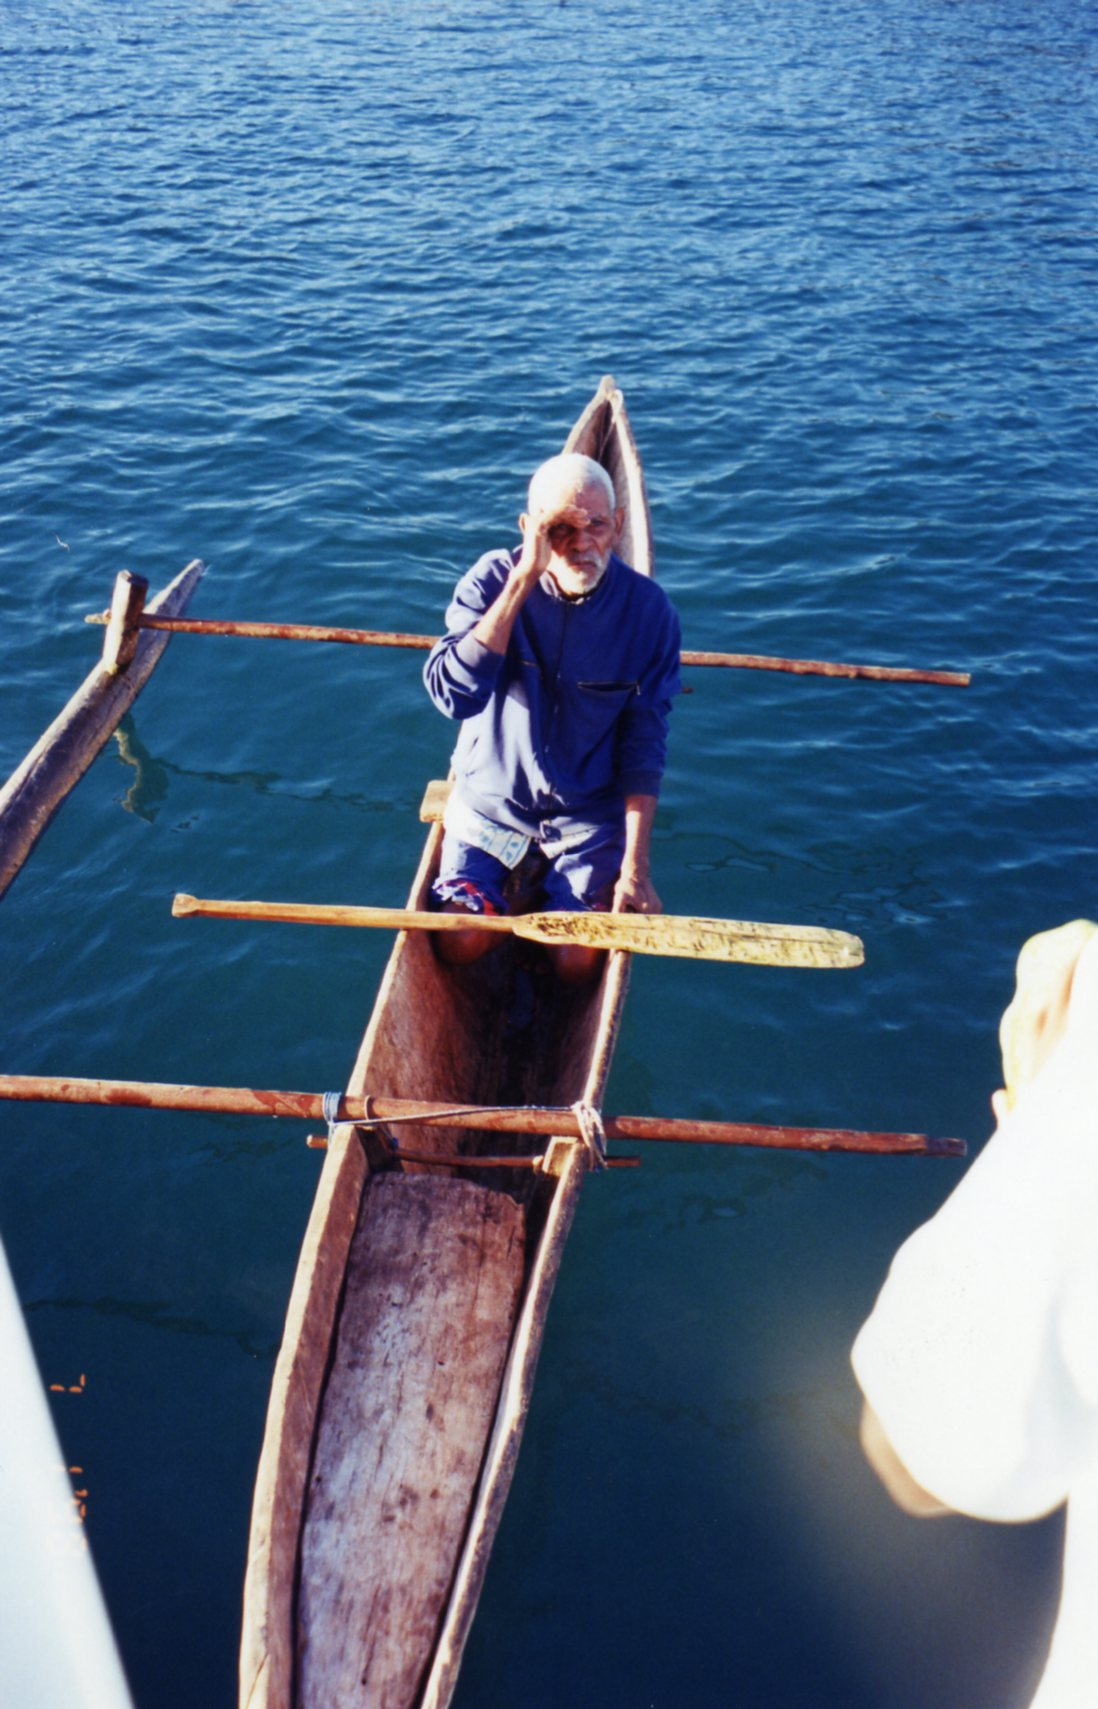 Visitor rowed to us asking for medicine for his sore tooth